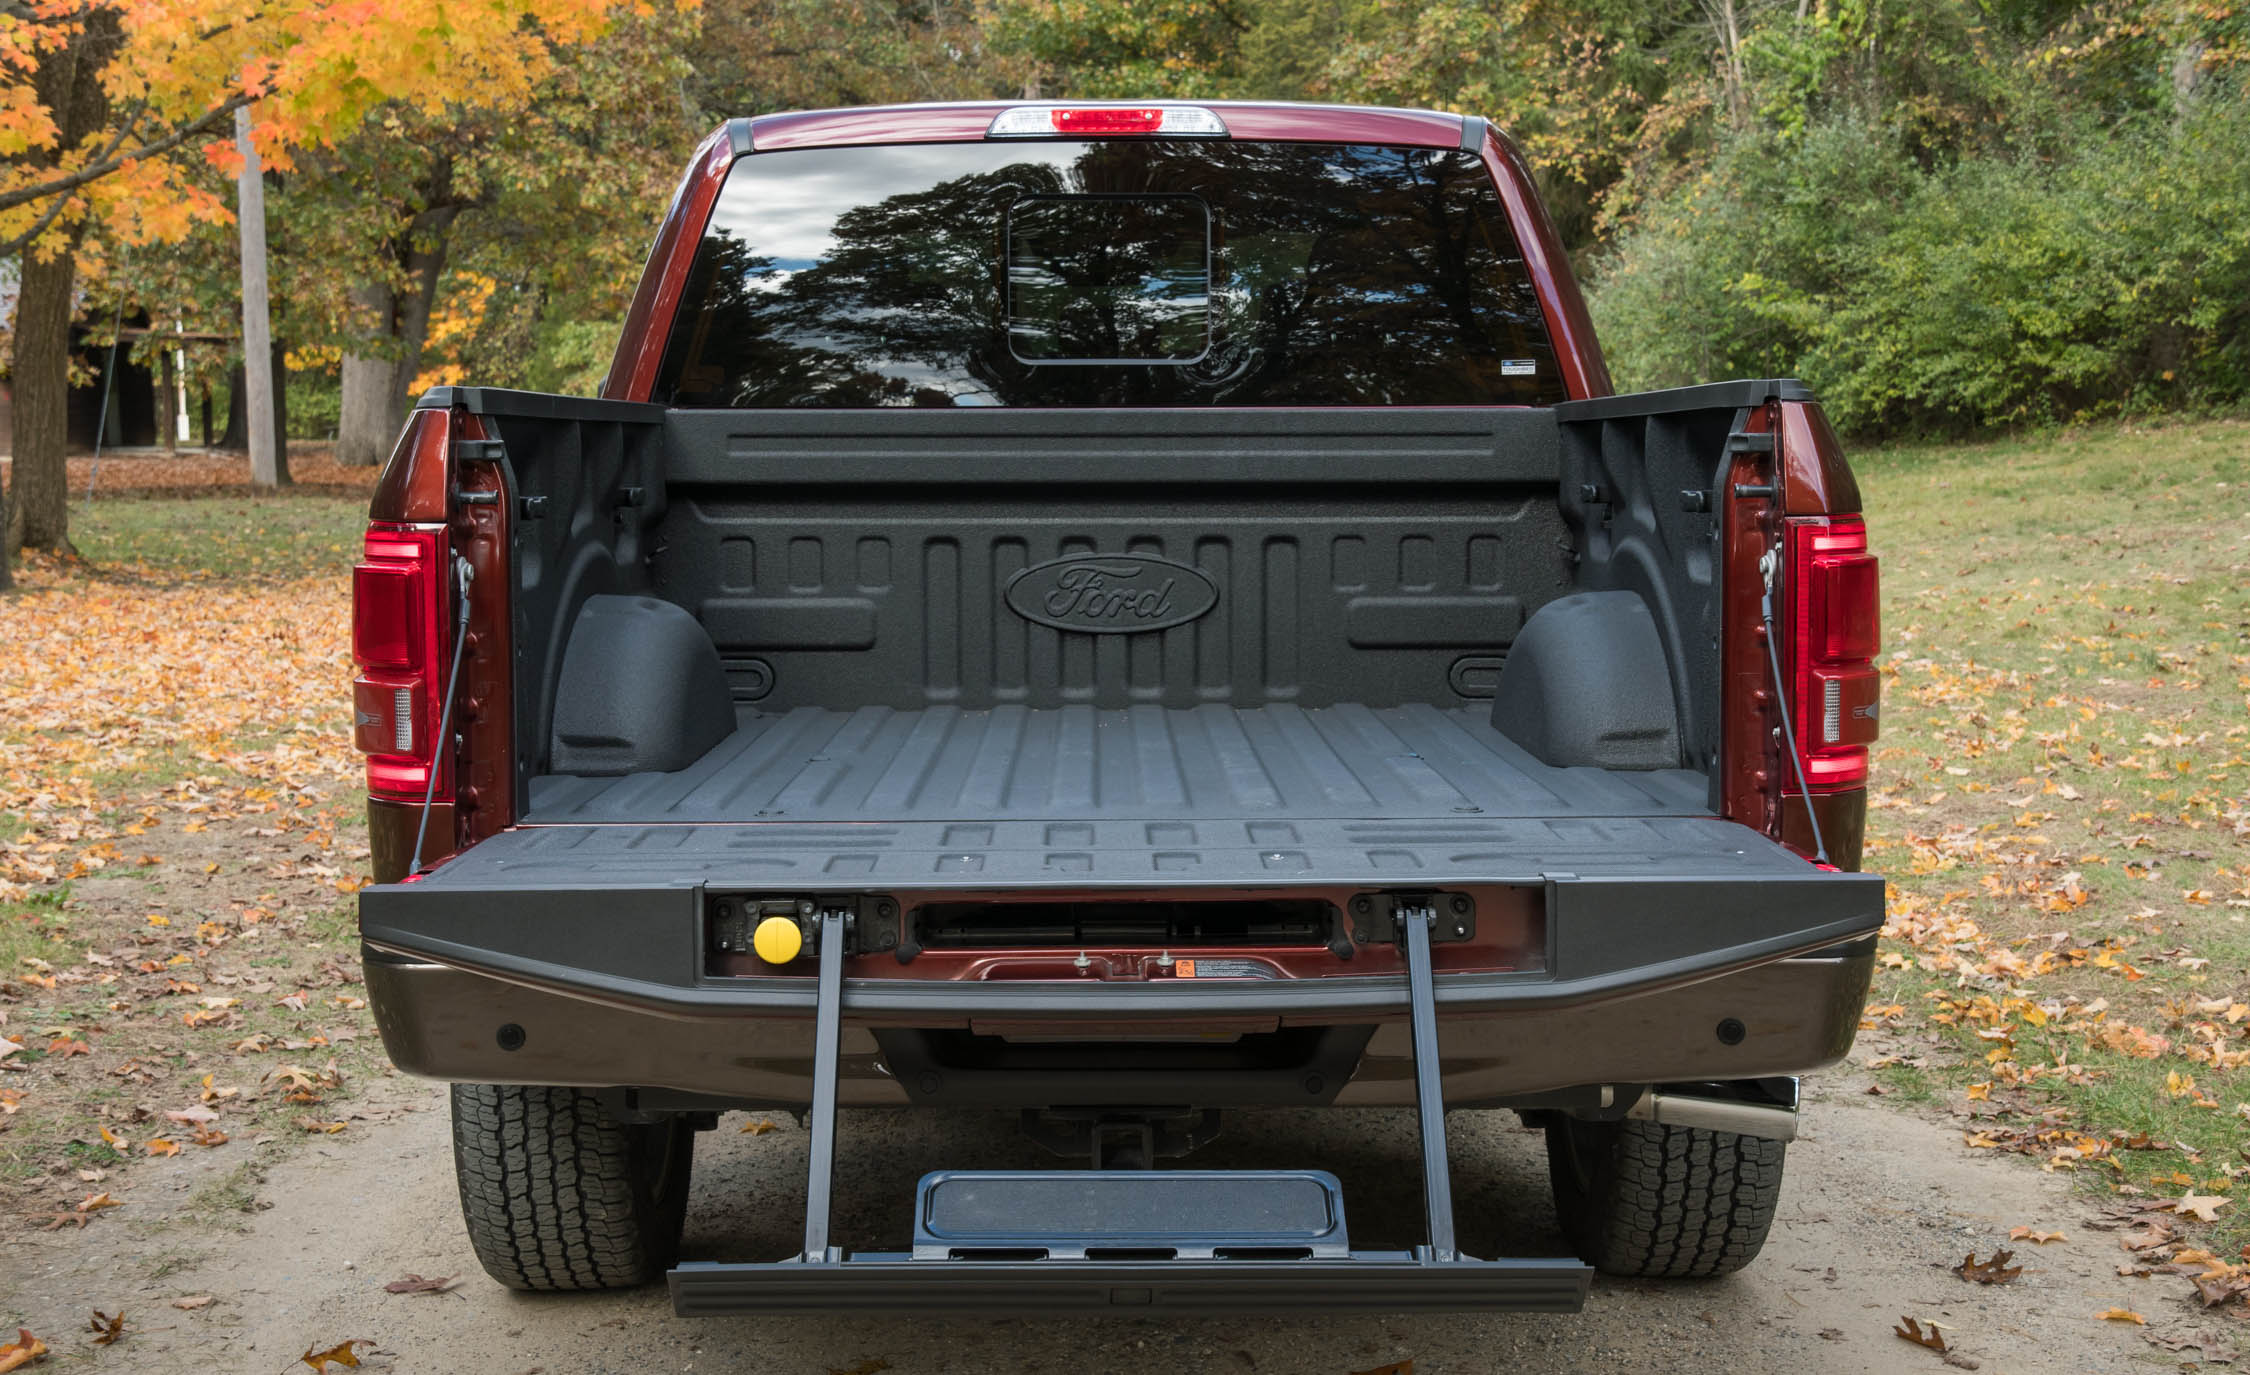 2017 Ford F 150 King Ranch Exterior View Rear Cab Cargo (Photo 37 of 50)